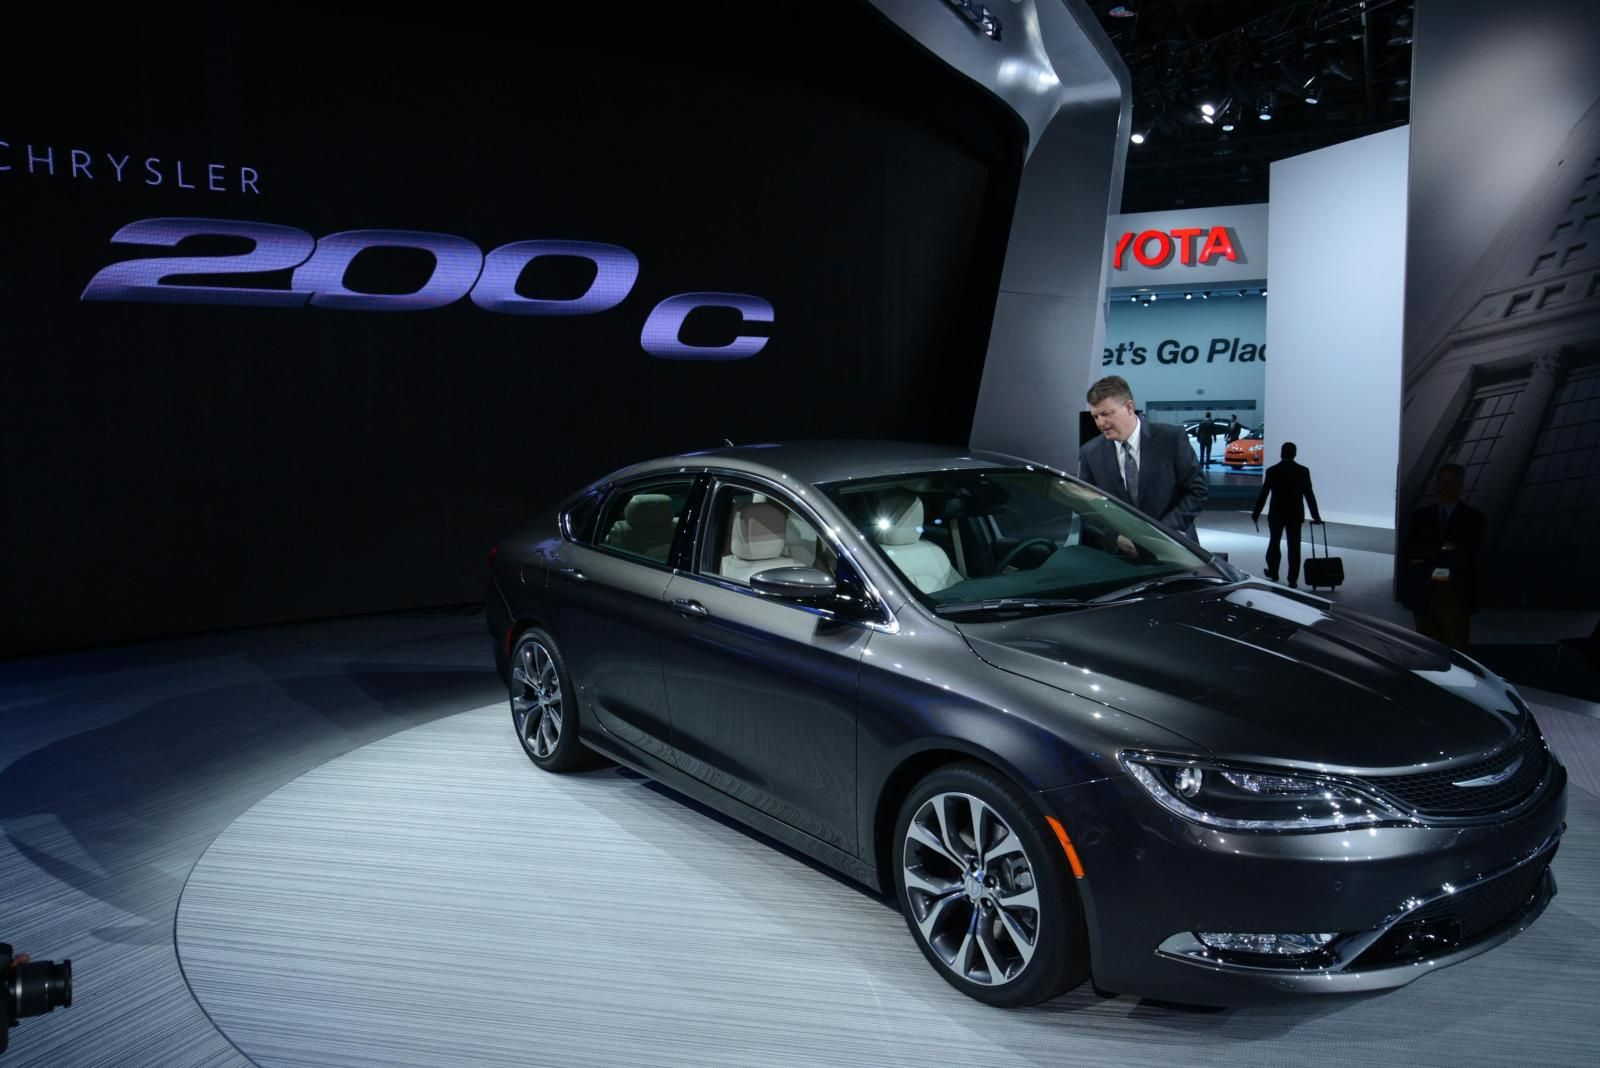 2015 chrysler 200 so excited we finally got one of these beauties machaikdcjr